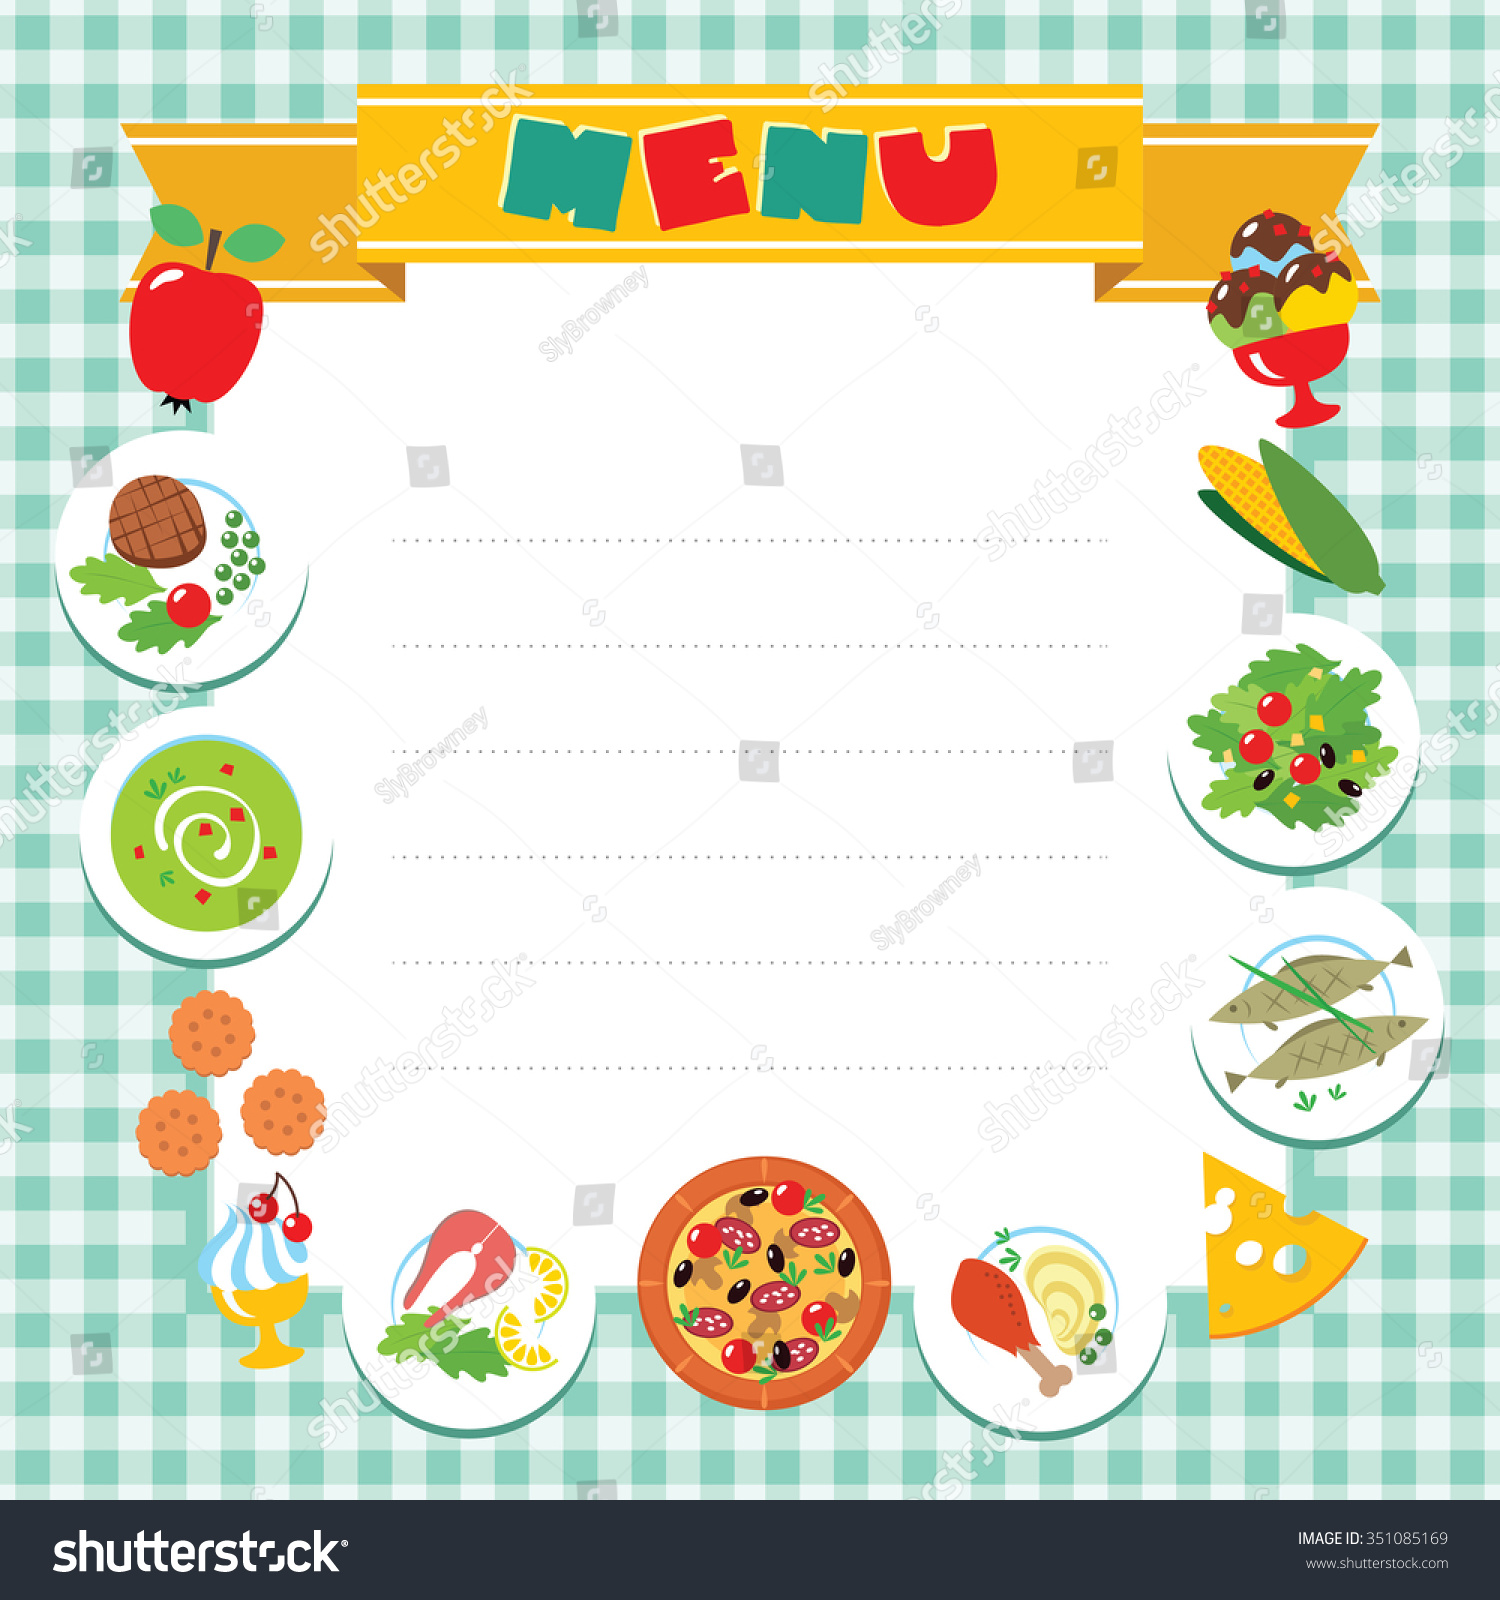 cafe restaurant menu vector design template stock vector (royalty